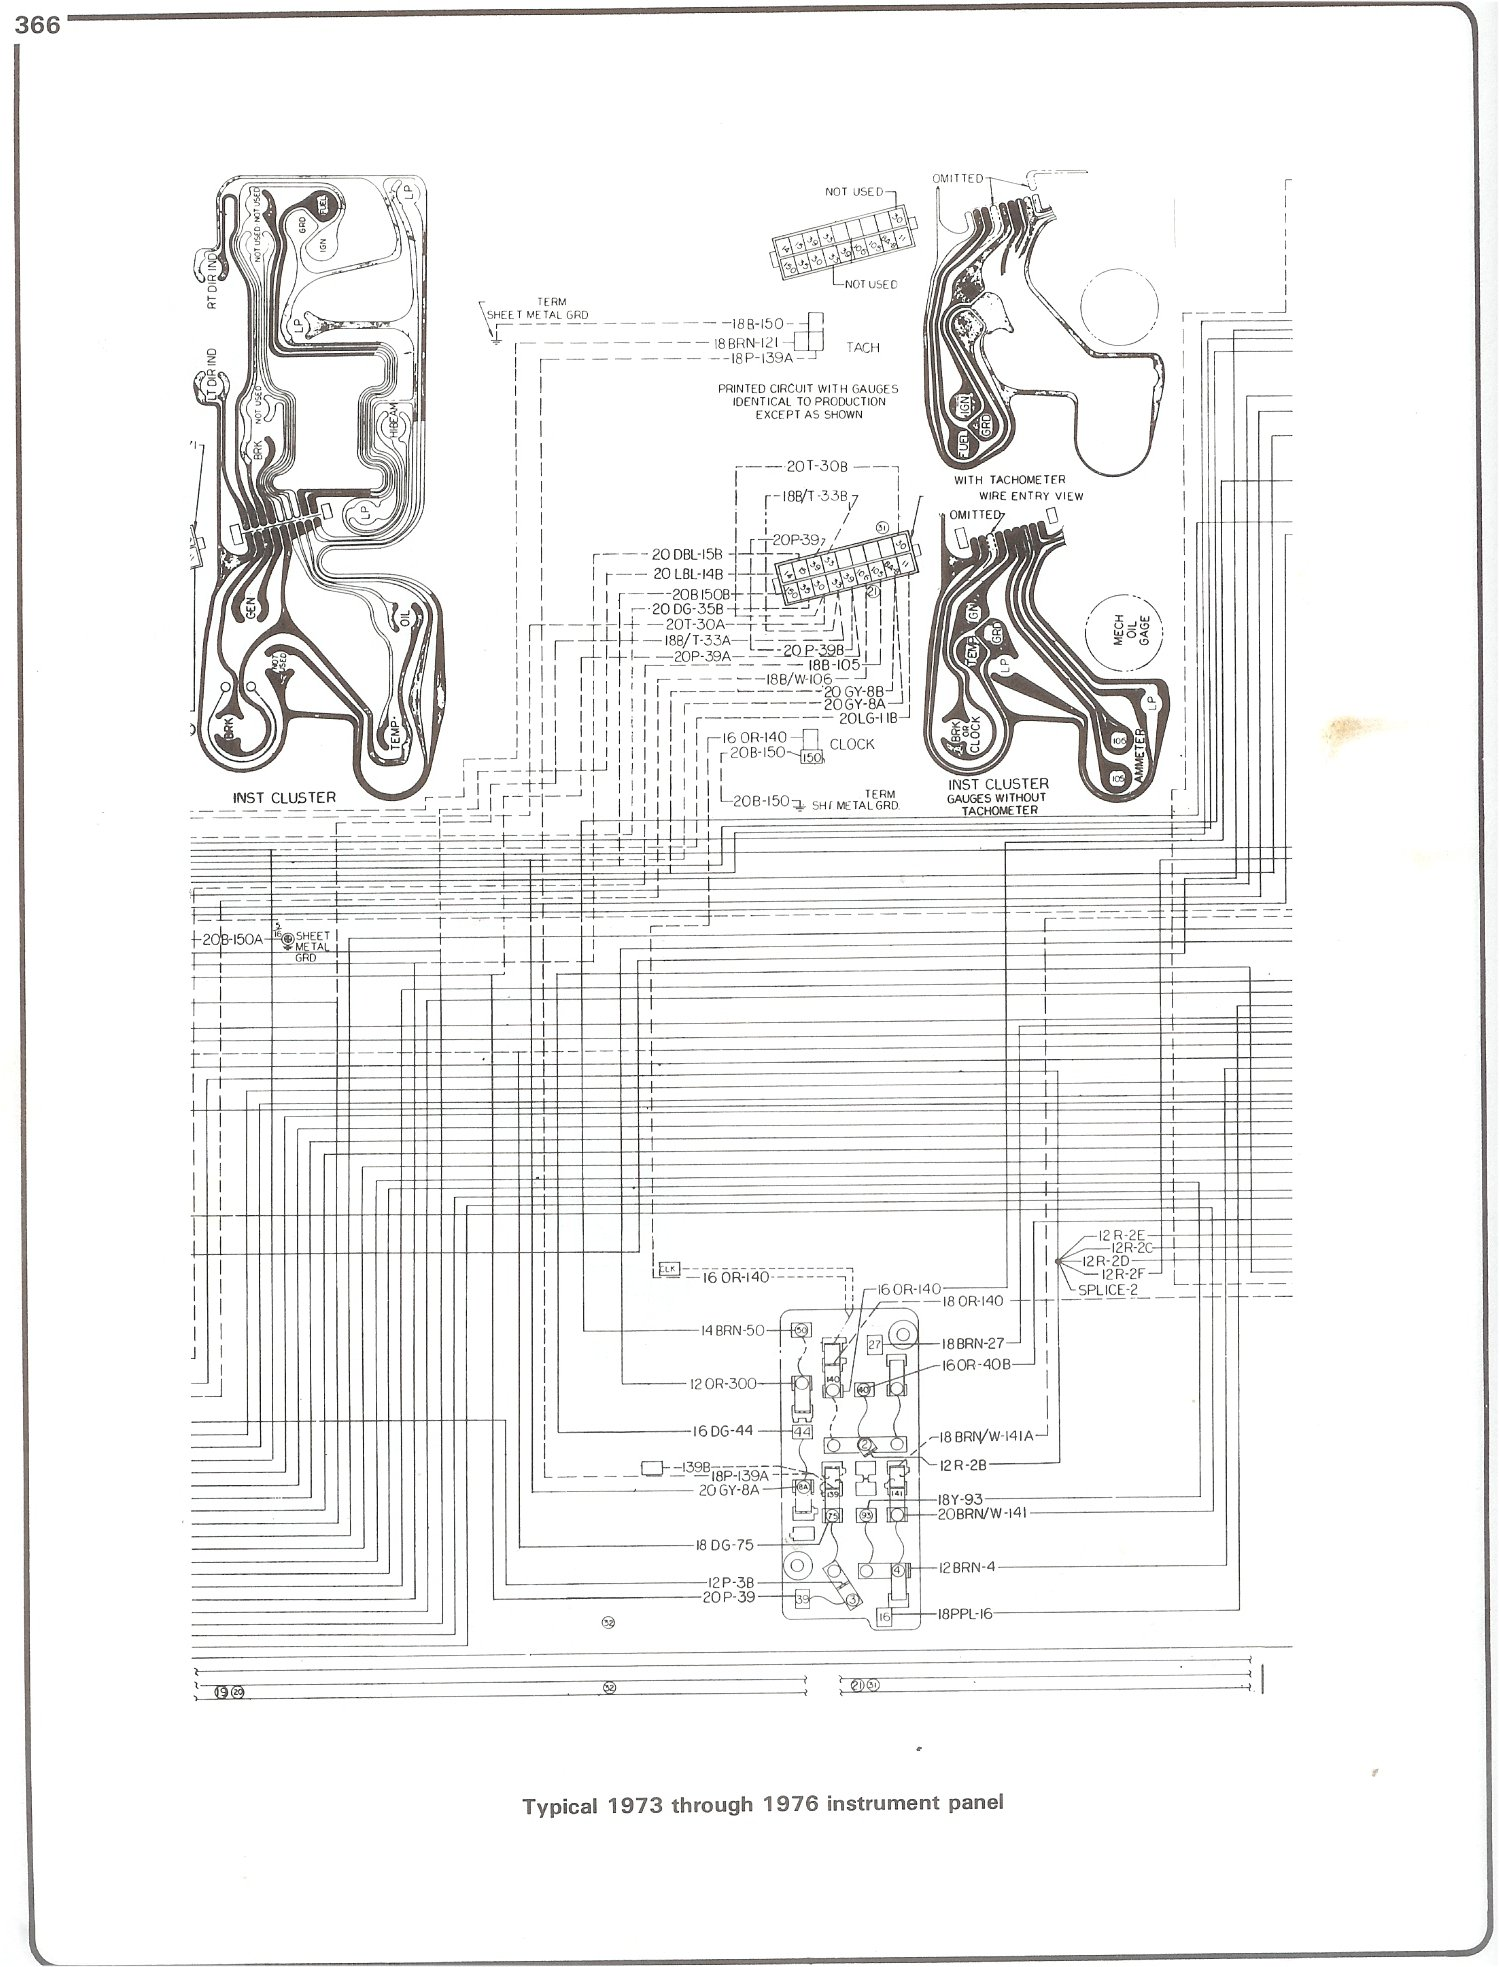 73 76_instrument complete 73 87 wiring diagrams fuse box diagram 1981 chevy truck at bakdesigns.co